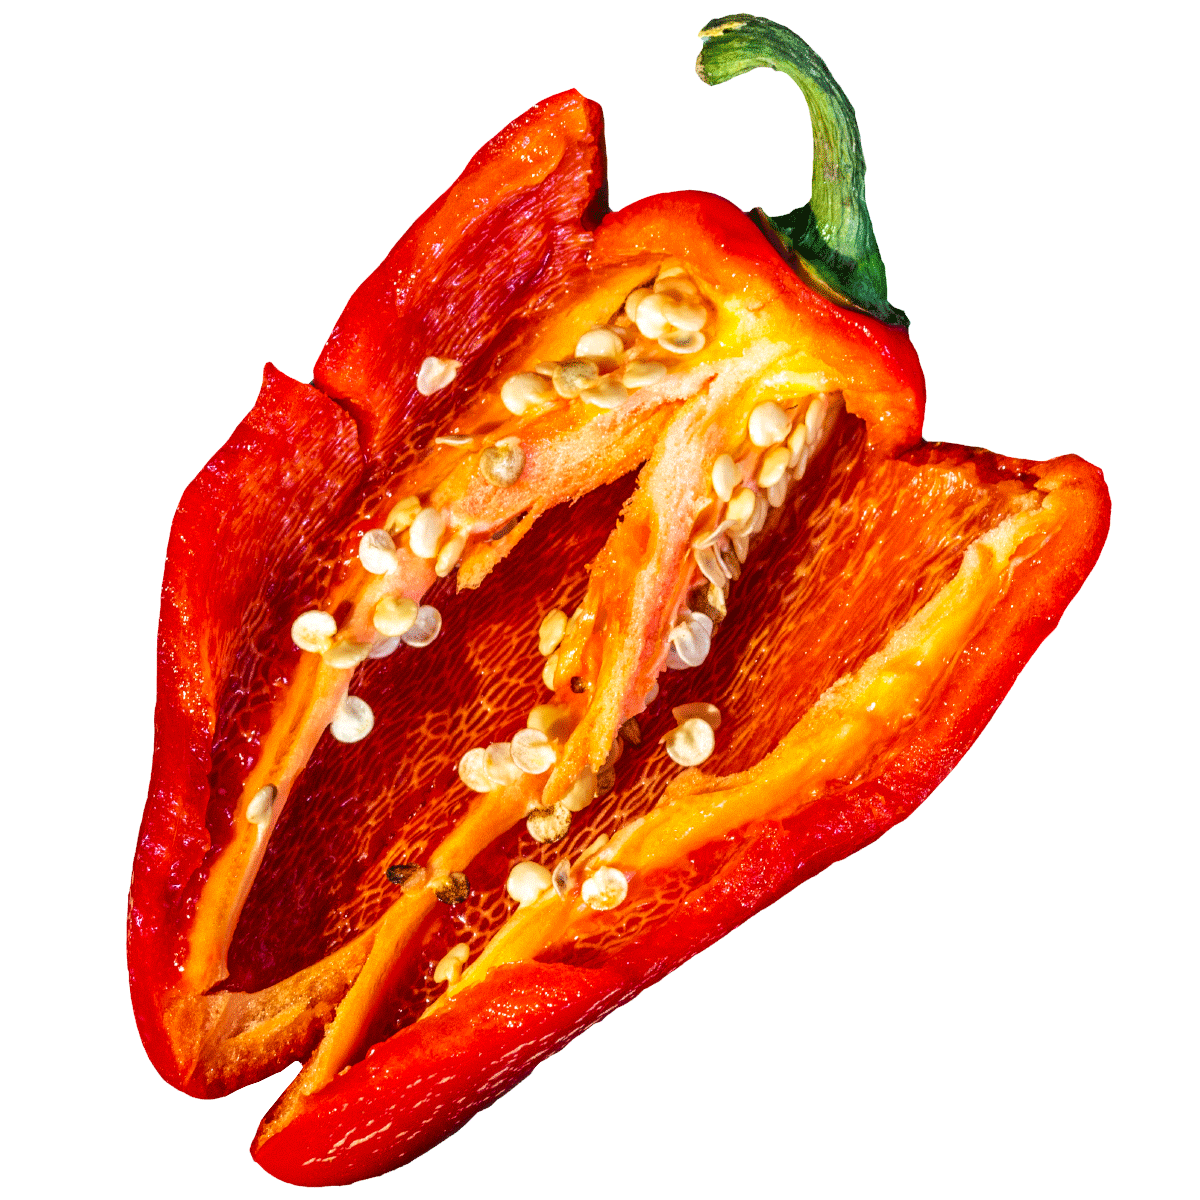 Ripe Red Jalaepeño split open to expose inner seeds and meat